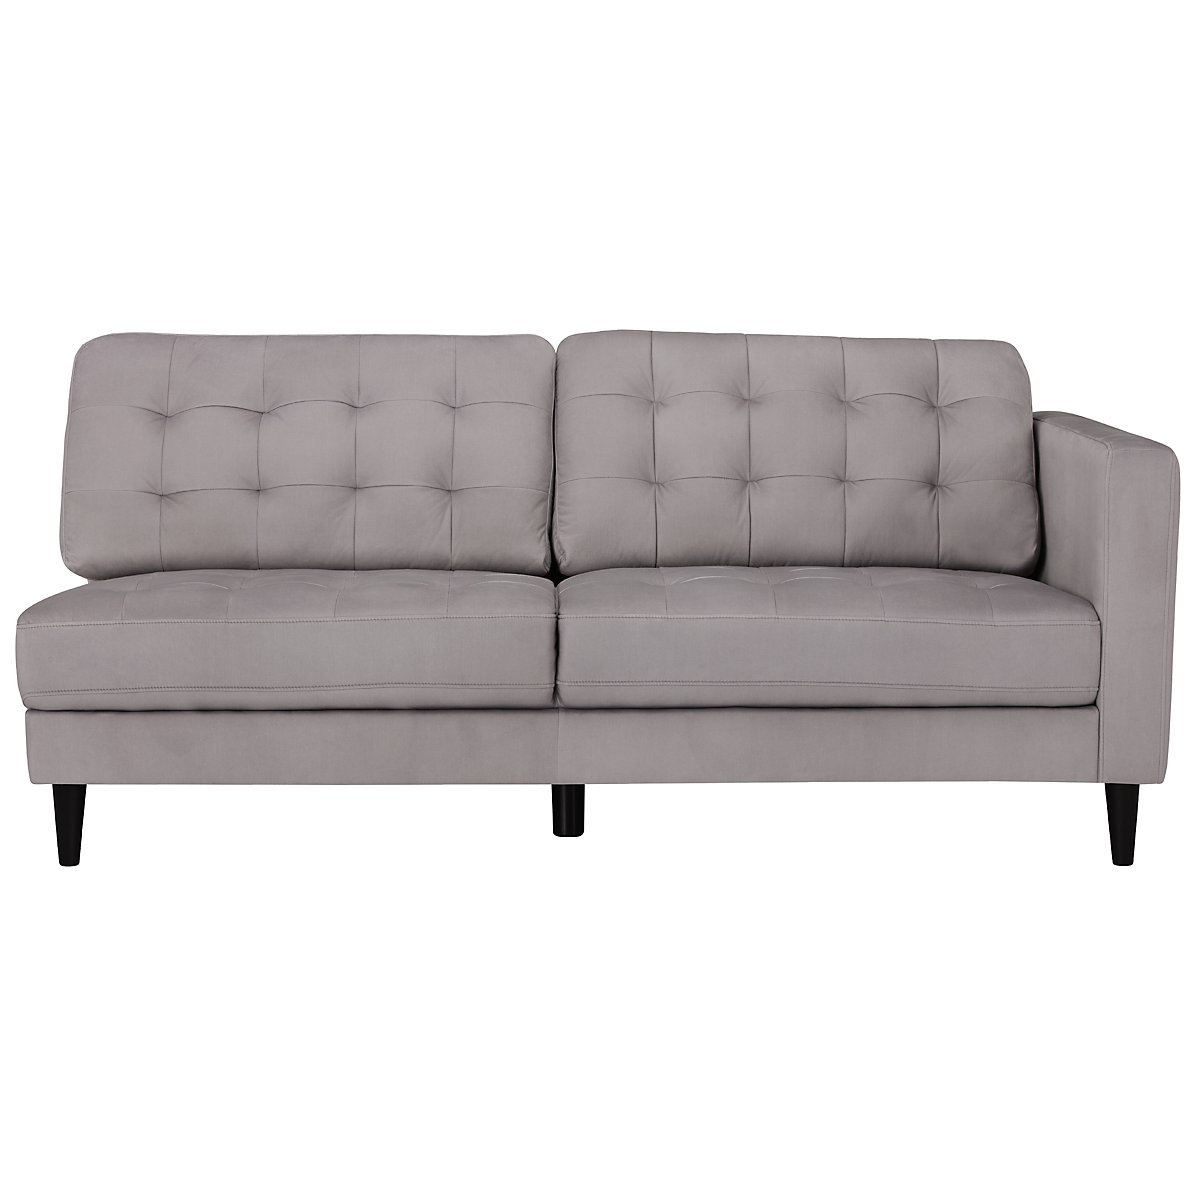 Shae light gray microfiber left chaise sectional living room for Gray microfiber sectional sofa with chaise